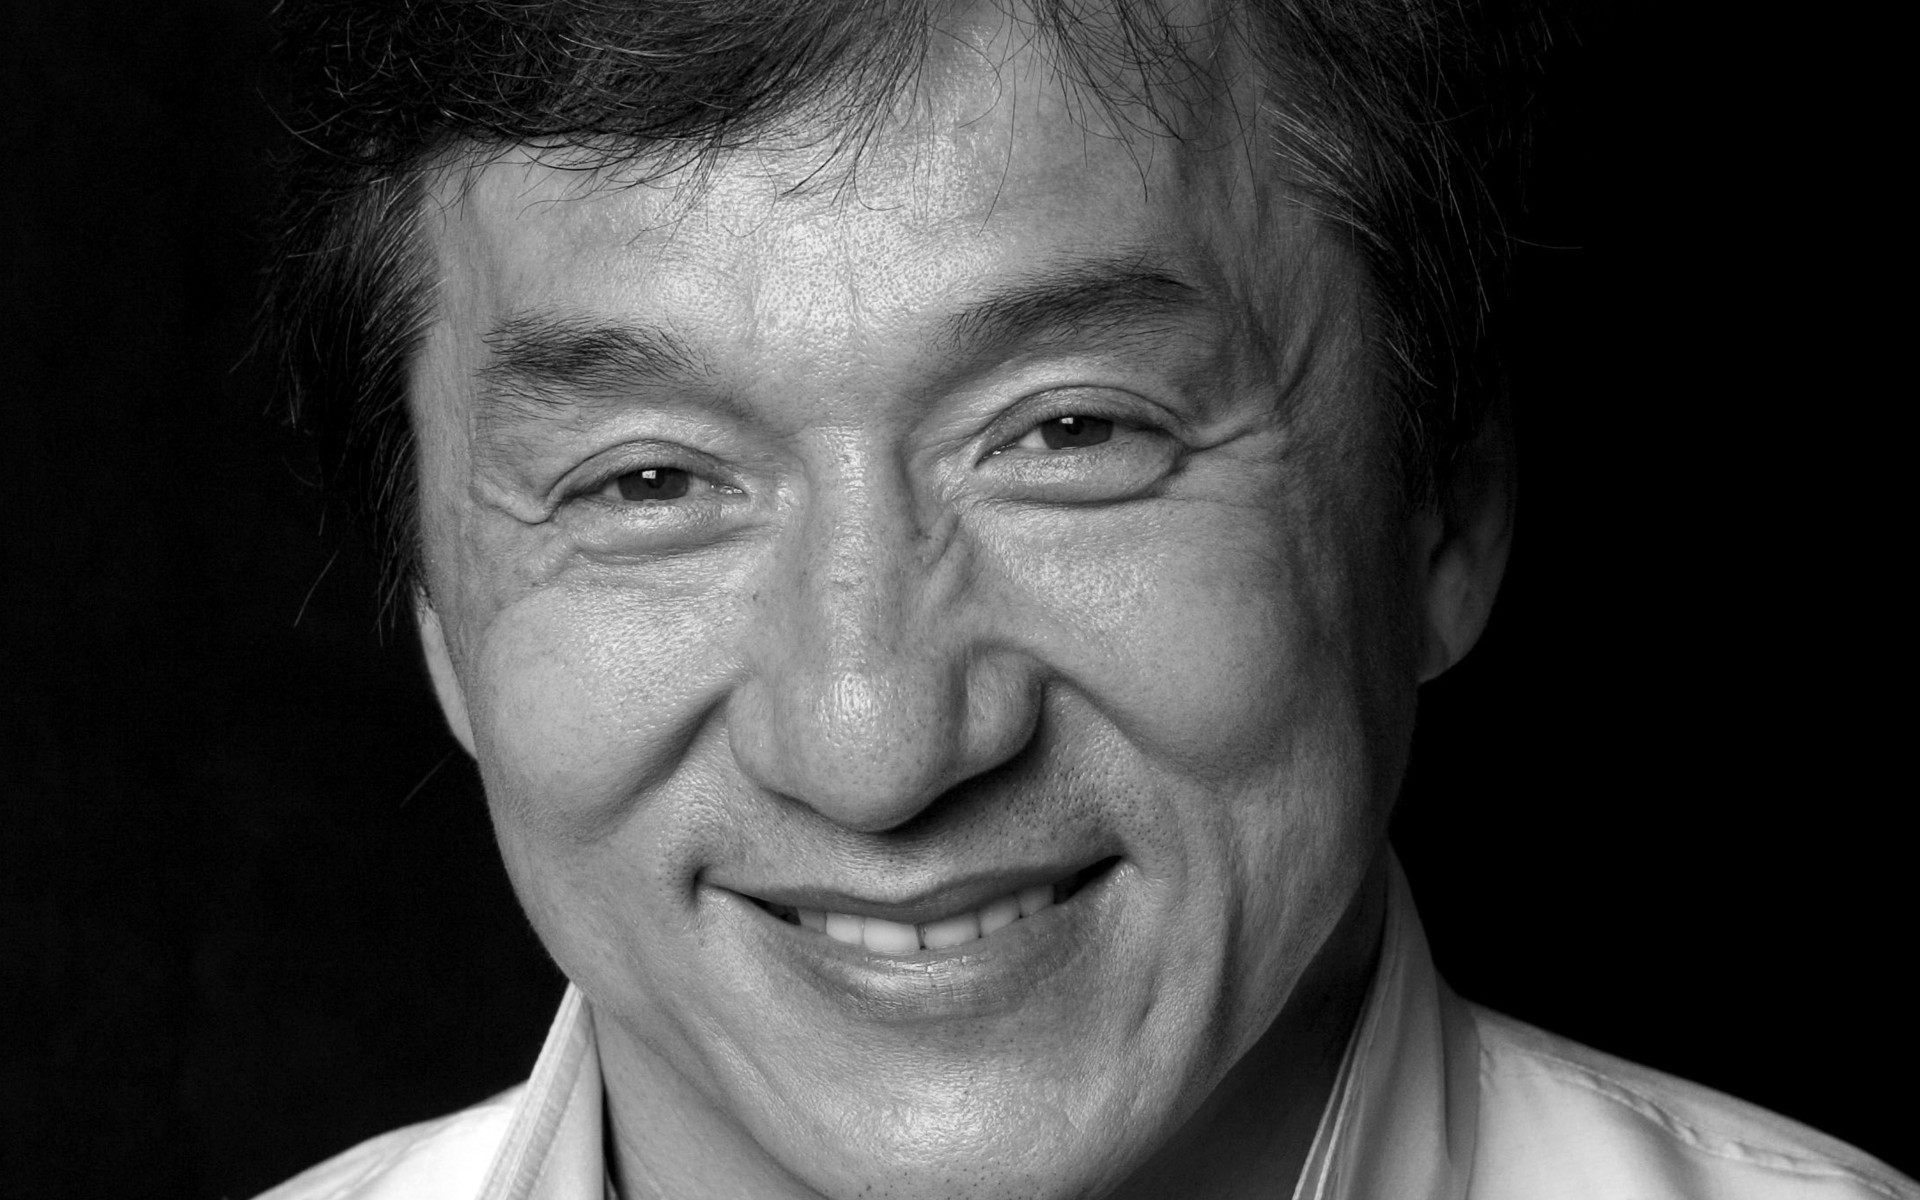 monochrome jackie chan face wallpaper 54869